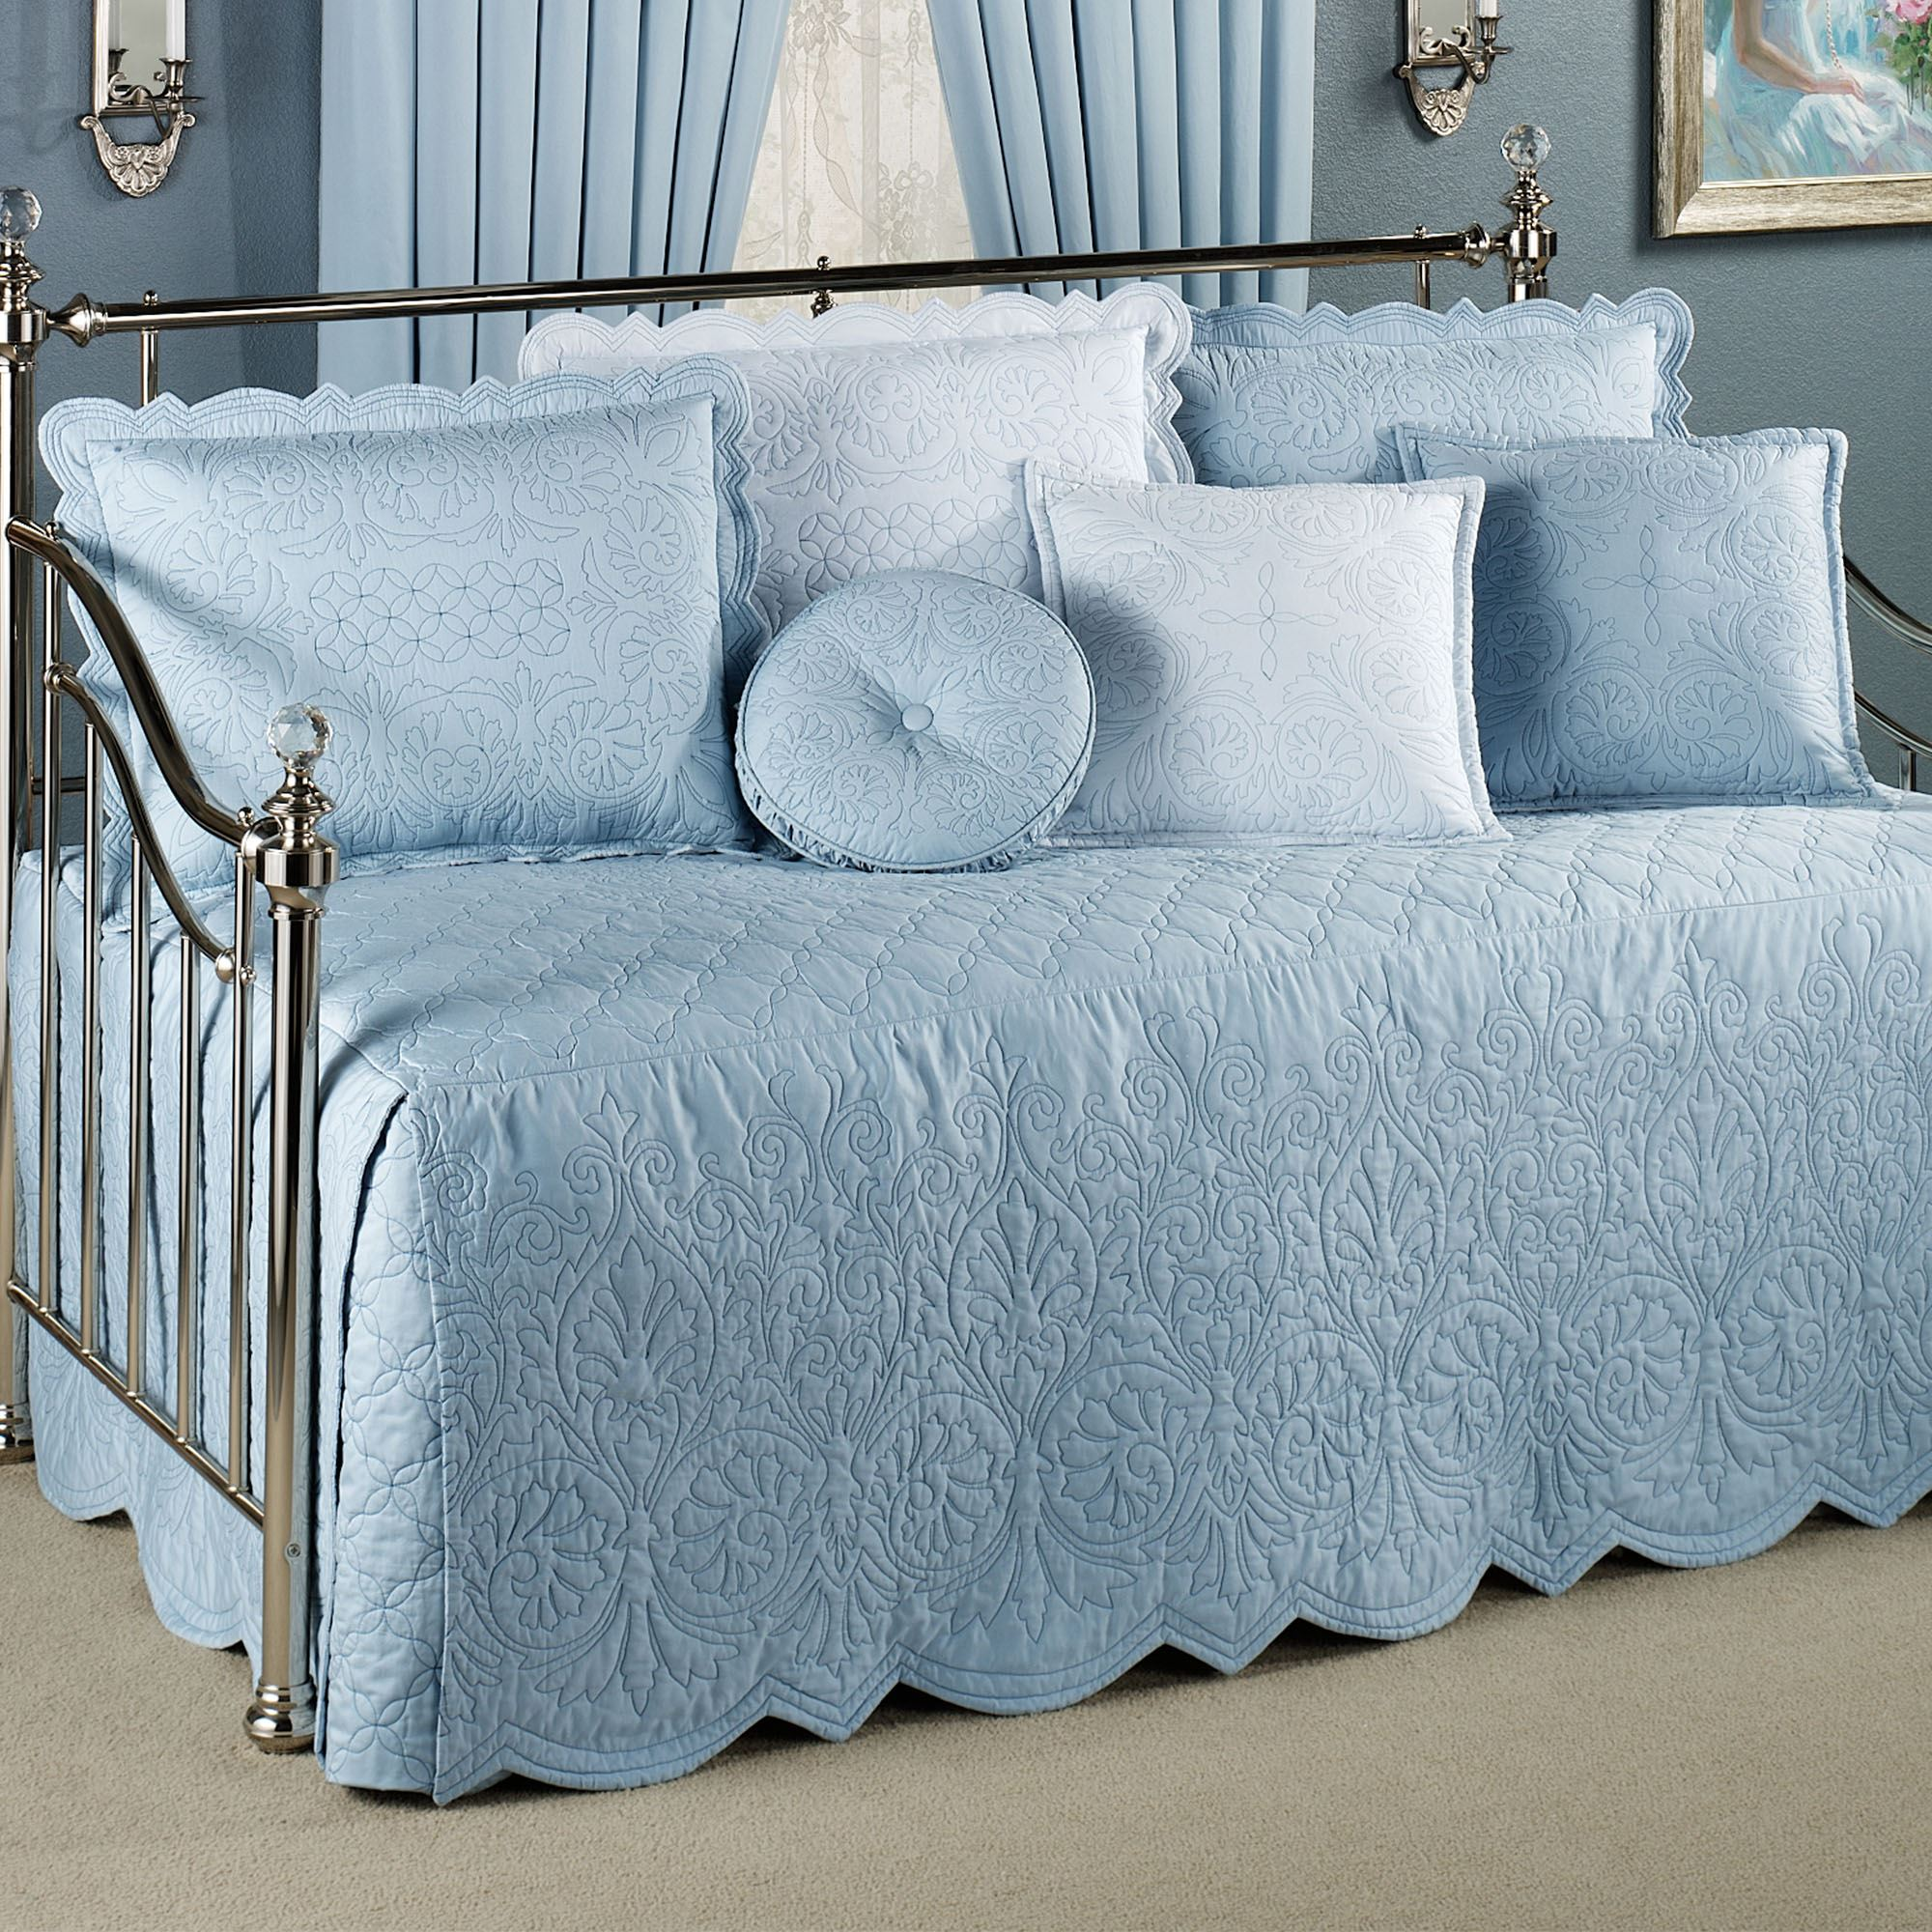 Touch Of Class Daybed Bedding Sets